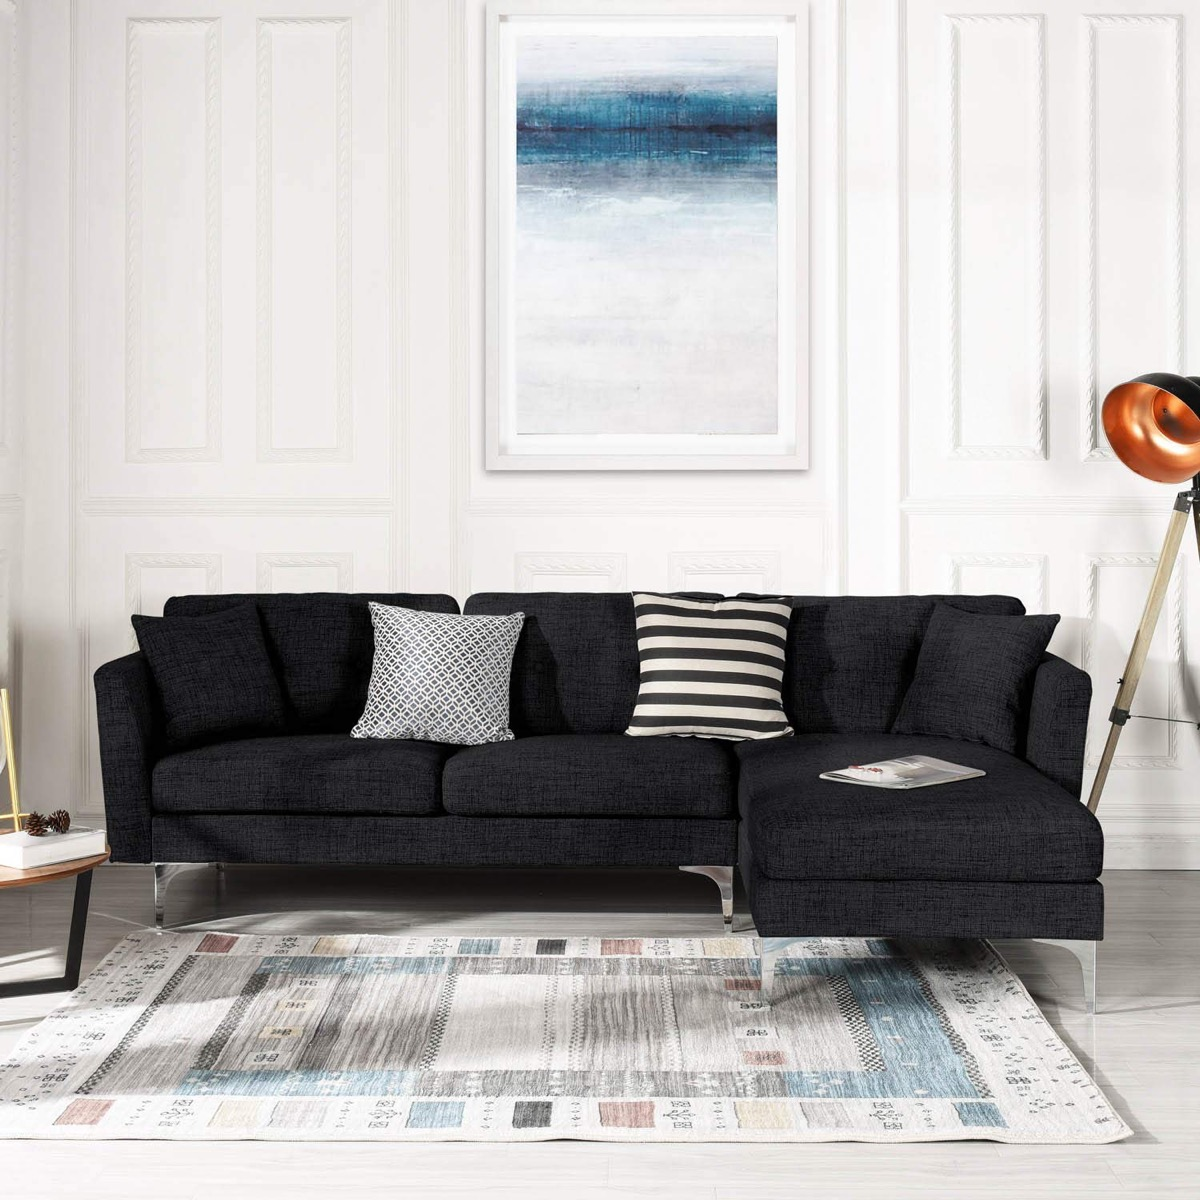 Picture of: Modern Black Sectional Sleeper Sofa Fabric Upholstery Awesome Decors